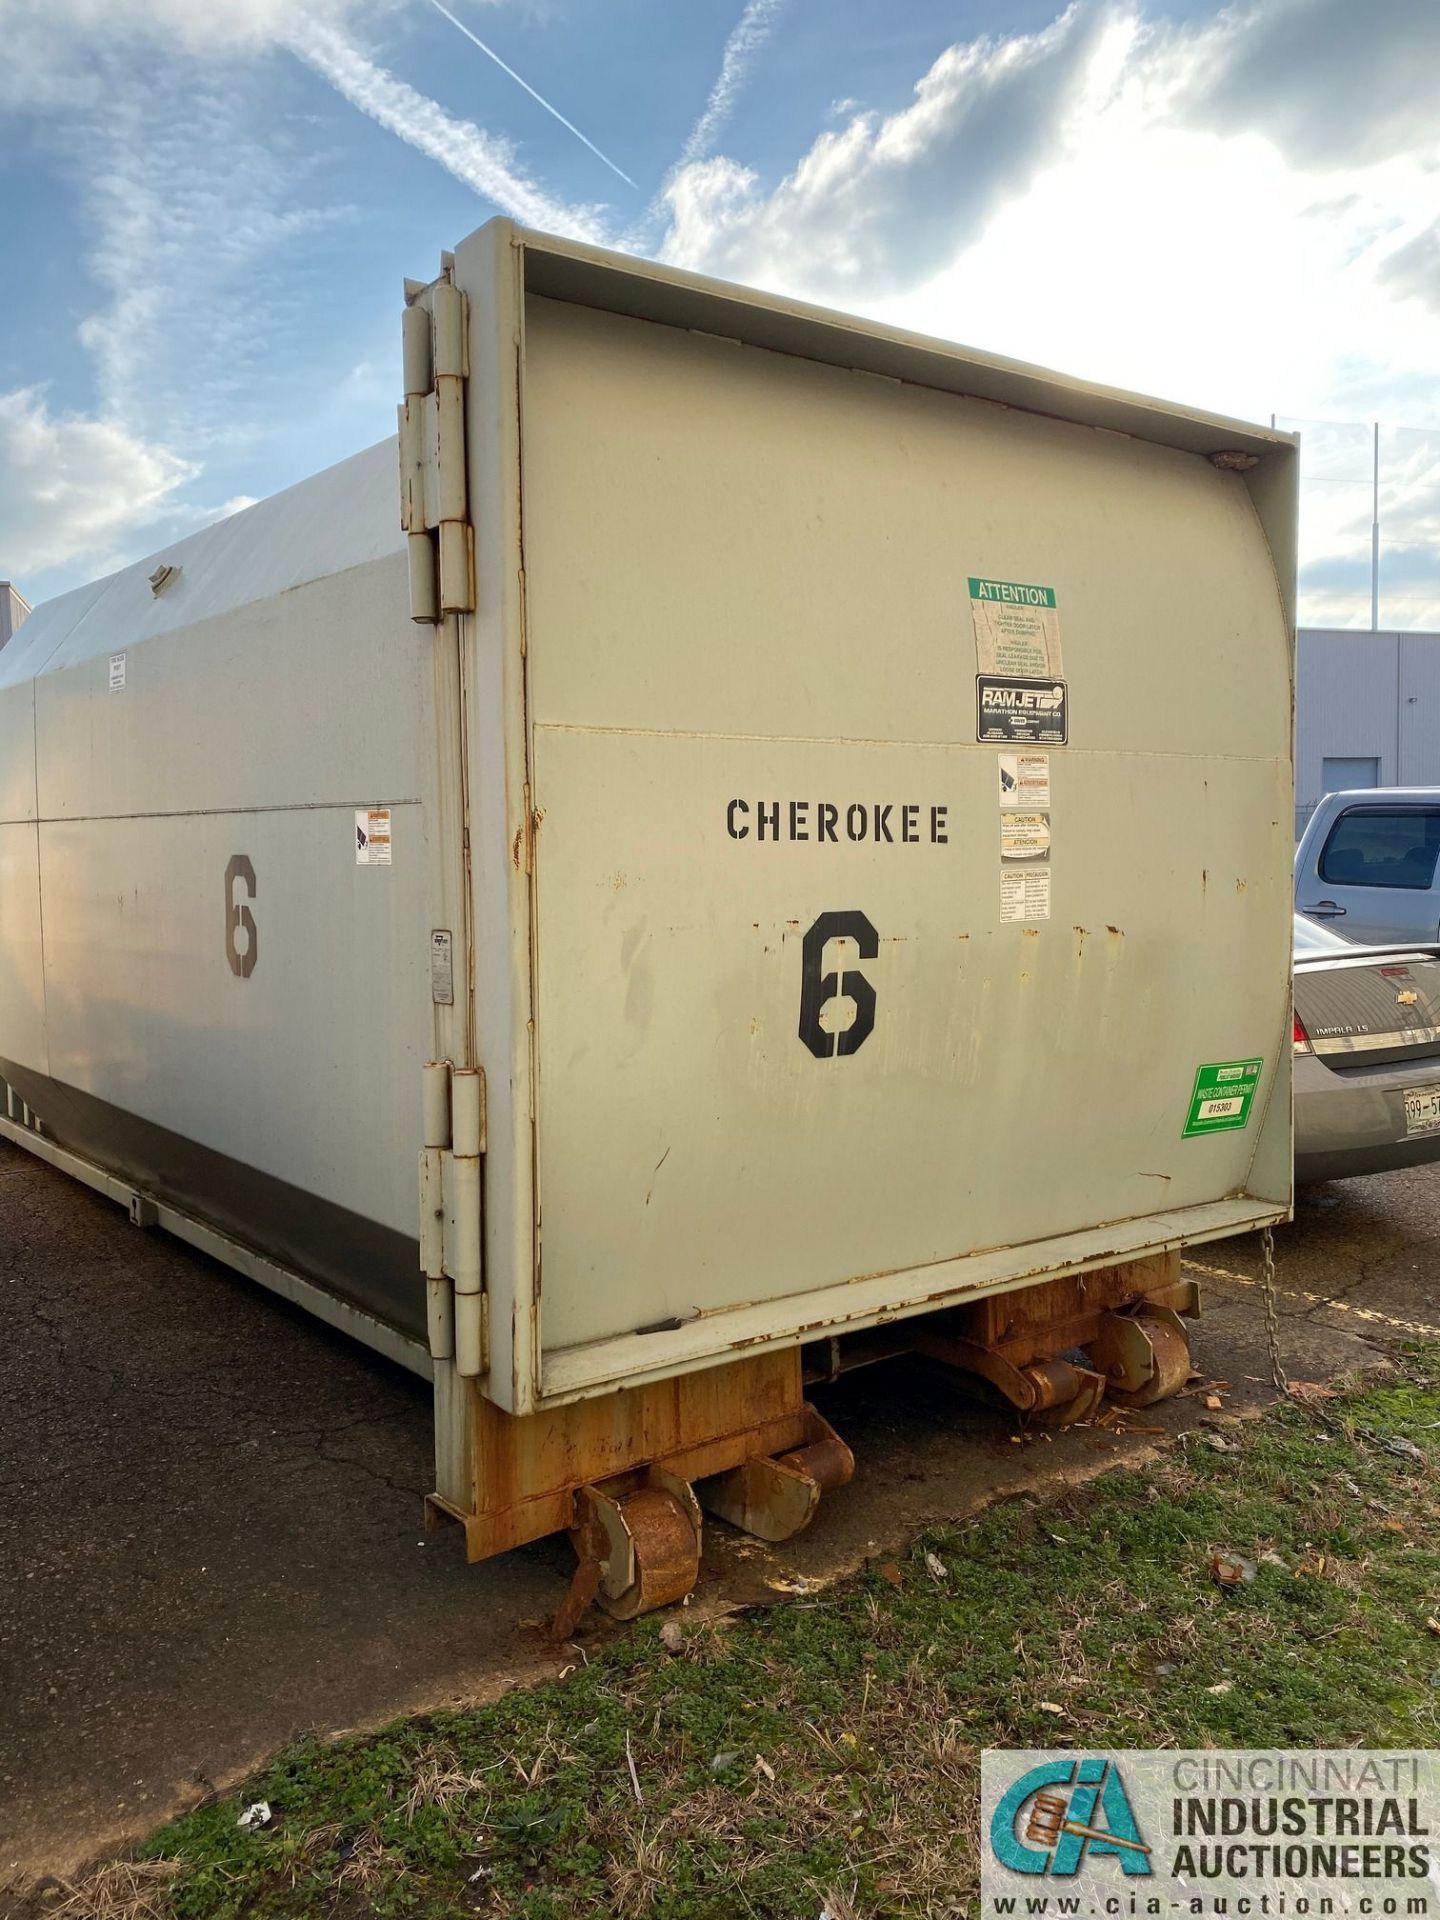 30 YD MARATHON MODEL RJ100-SC-30YD SELF-CONTAINED COMPACTOR/ CONTAINER; S/N 2228709 (2009) 45,200 LB - Image 4 of 7